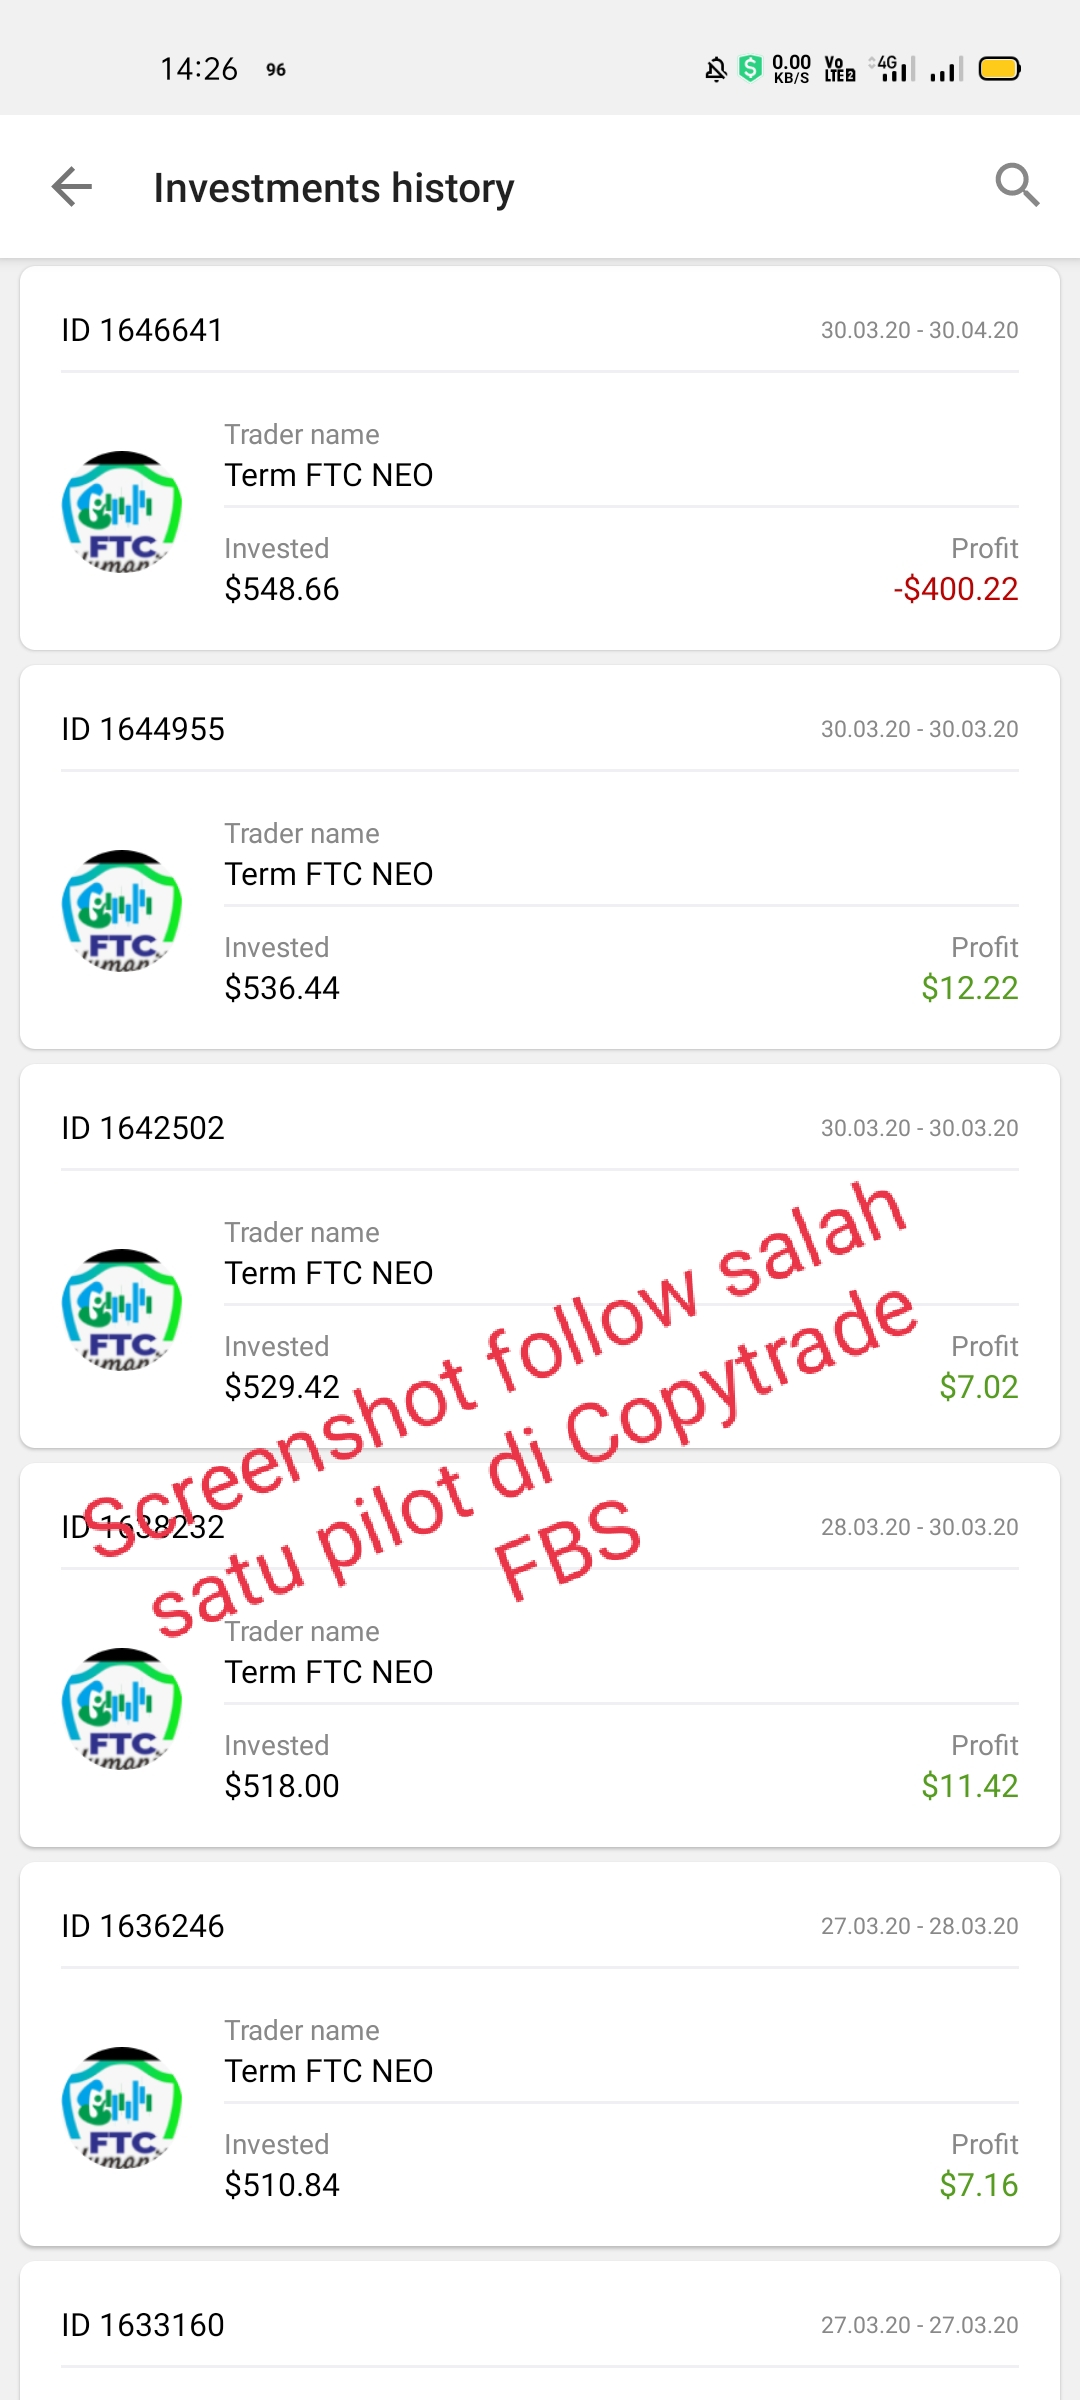 screenshot follow salah satu pilot di copytrade fbs